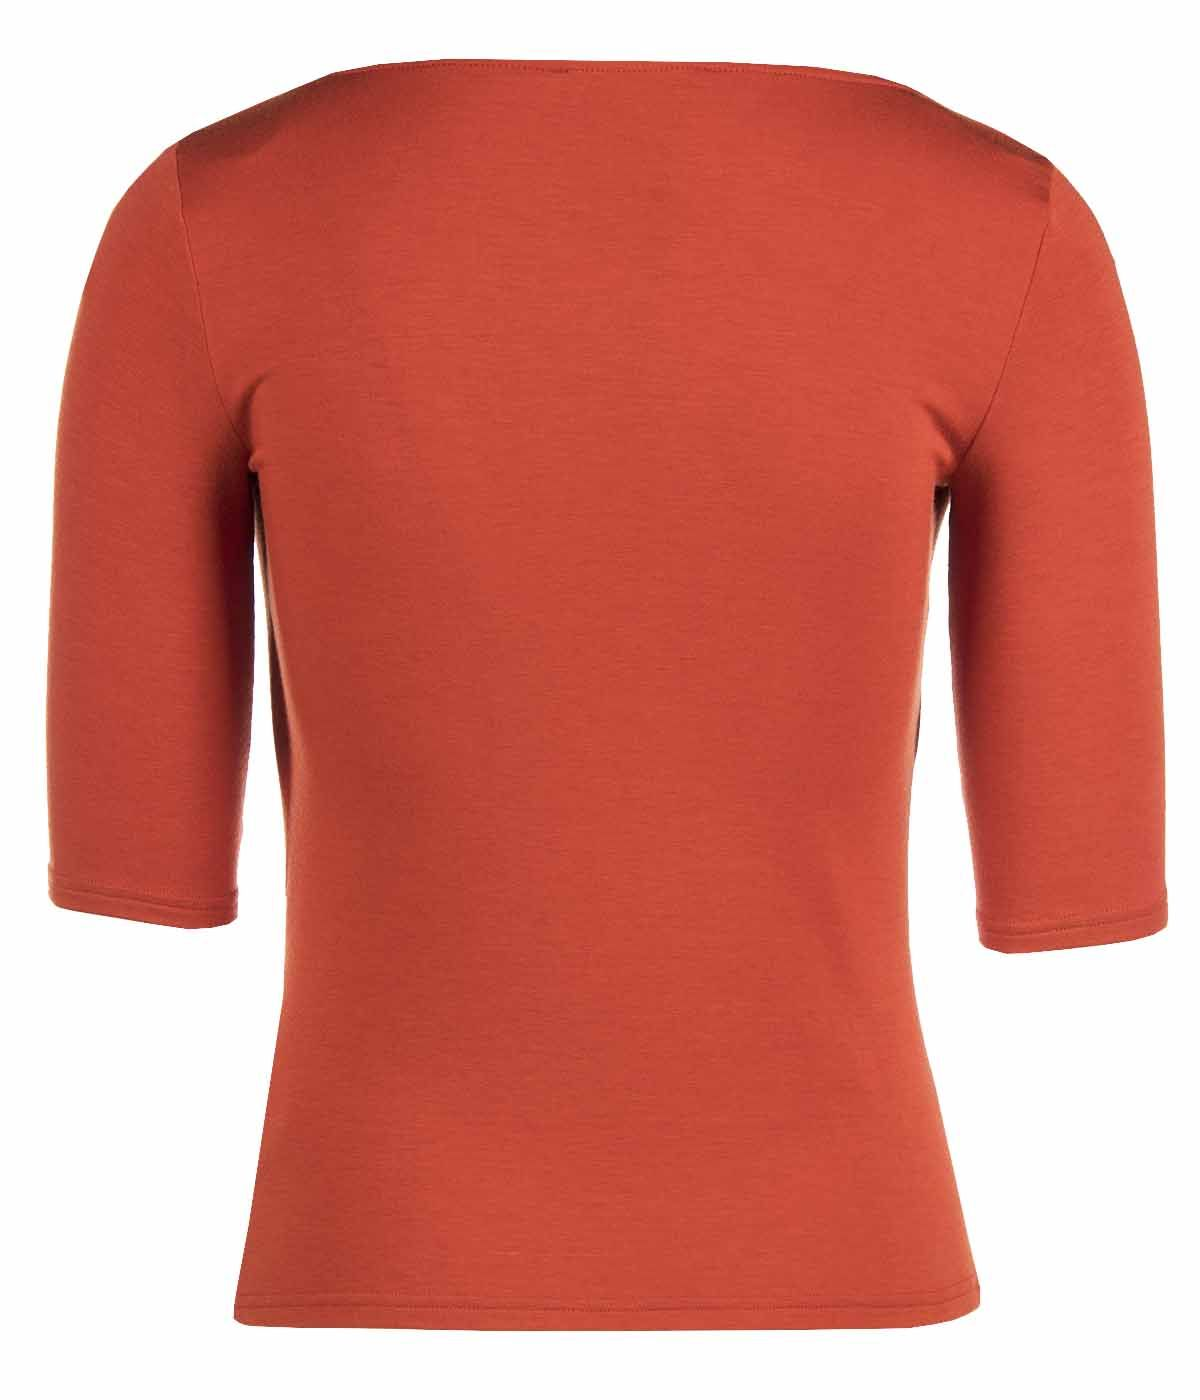 JERSEY  BLOUSE WITH ¾ SLEEVES AND FRONT TIED DETAIL 1